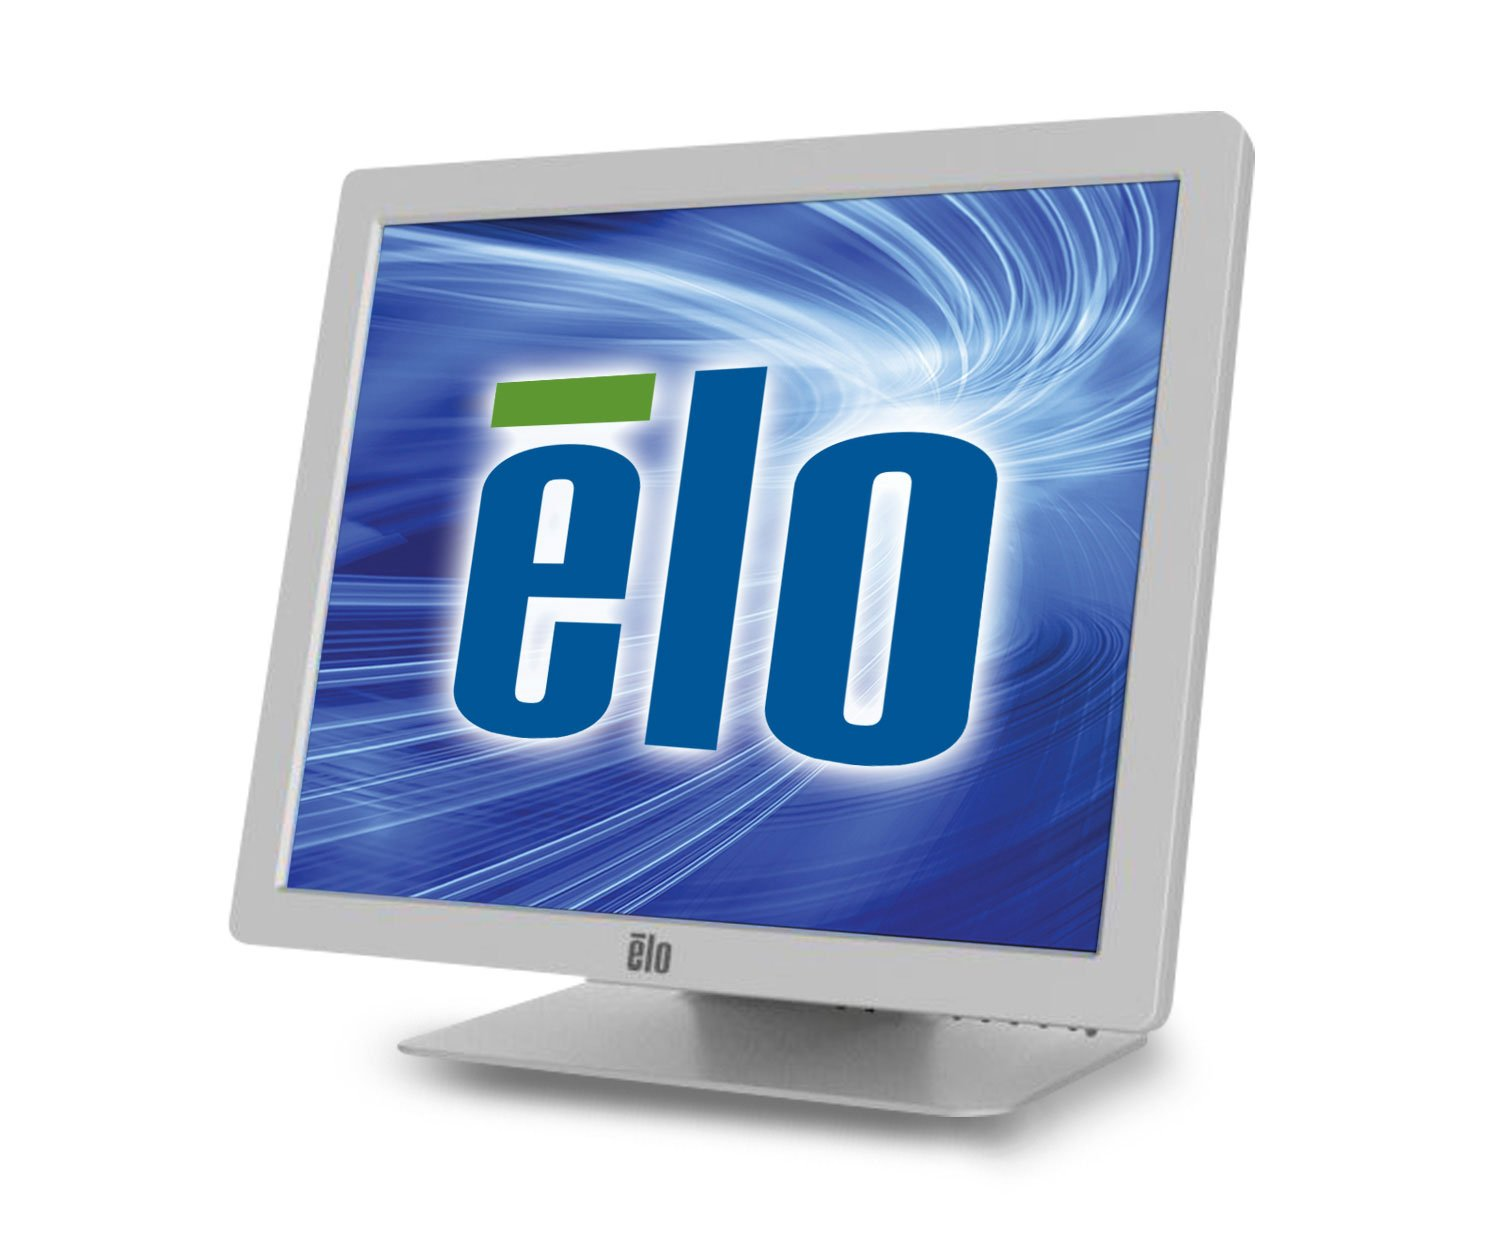 Elo E000167 1929LM 19'' LED-Backlit LCD Monitor, White by ELO